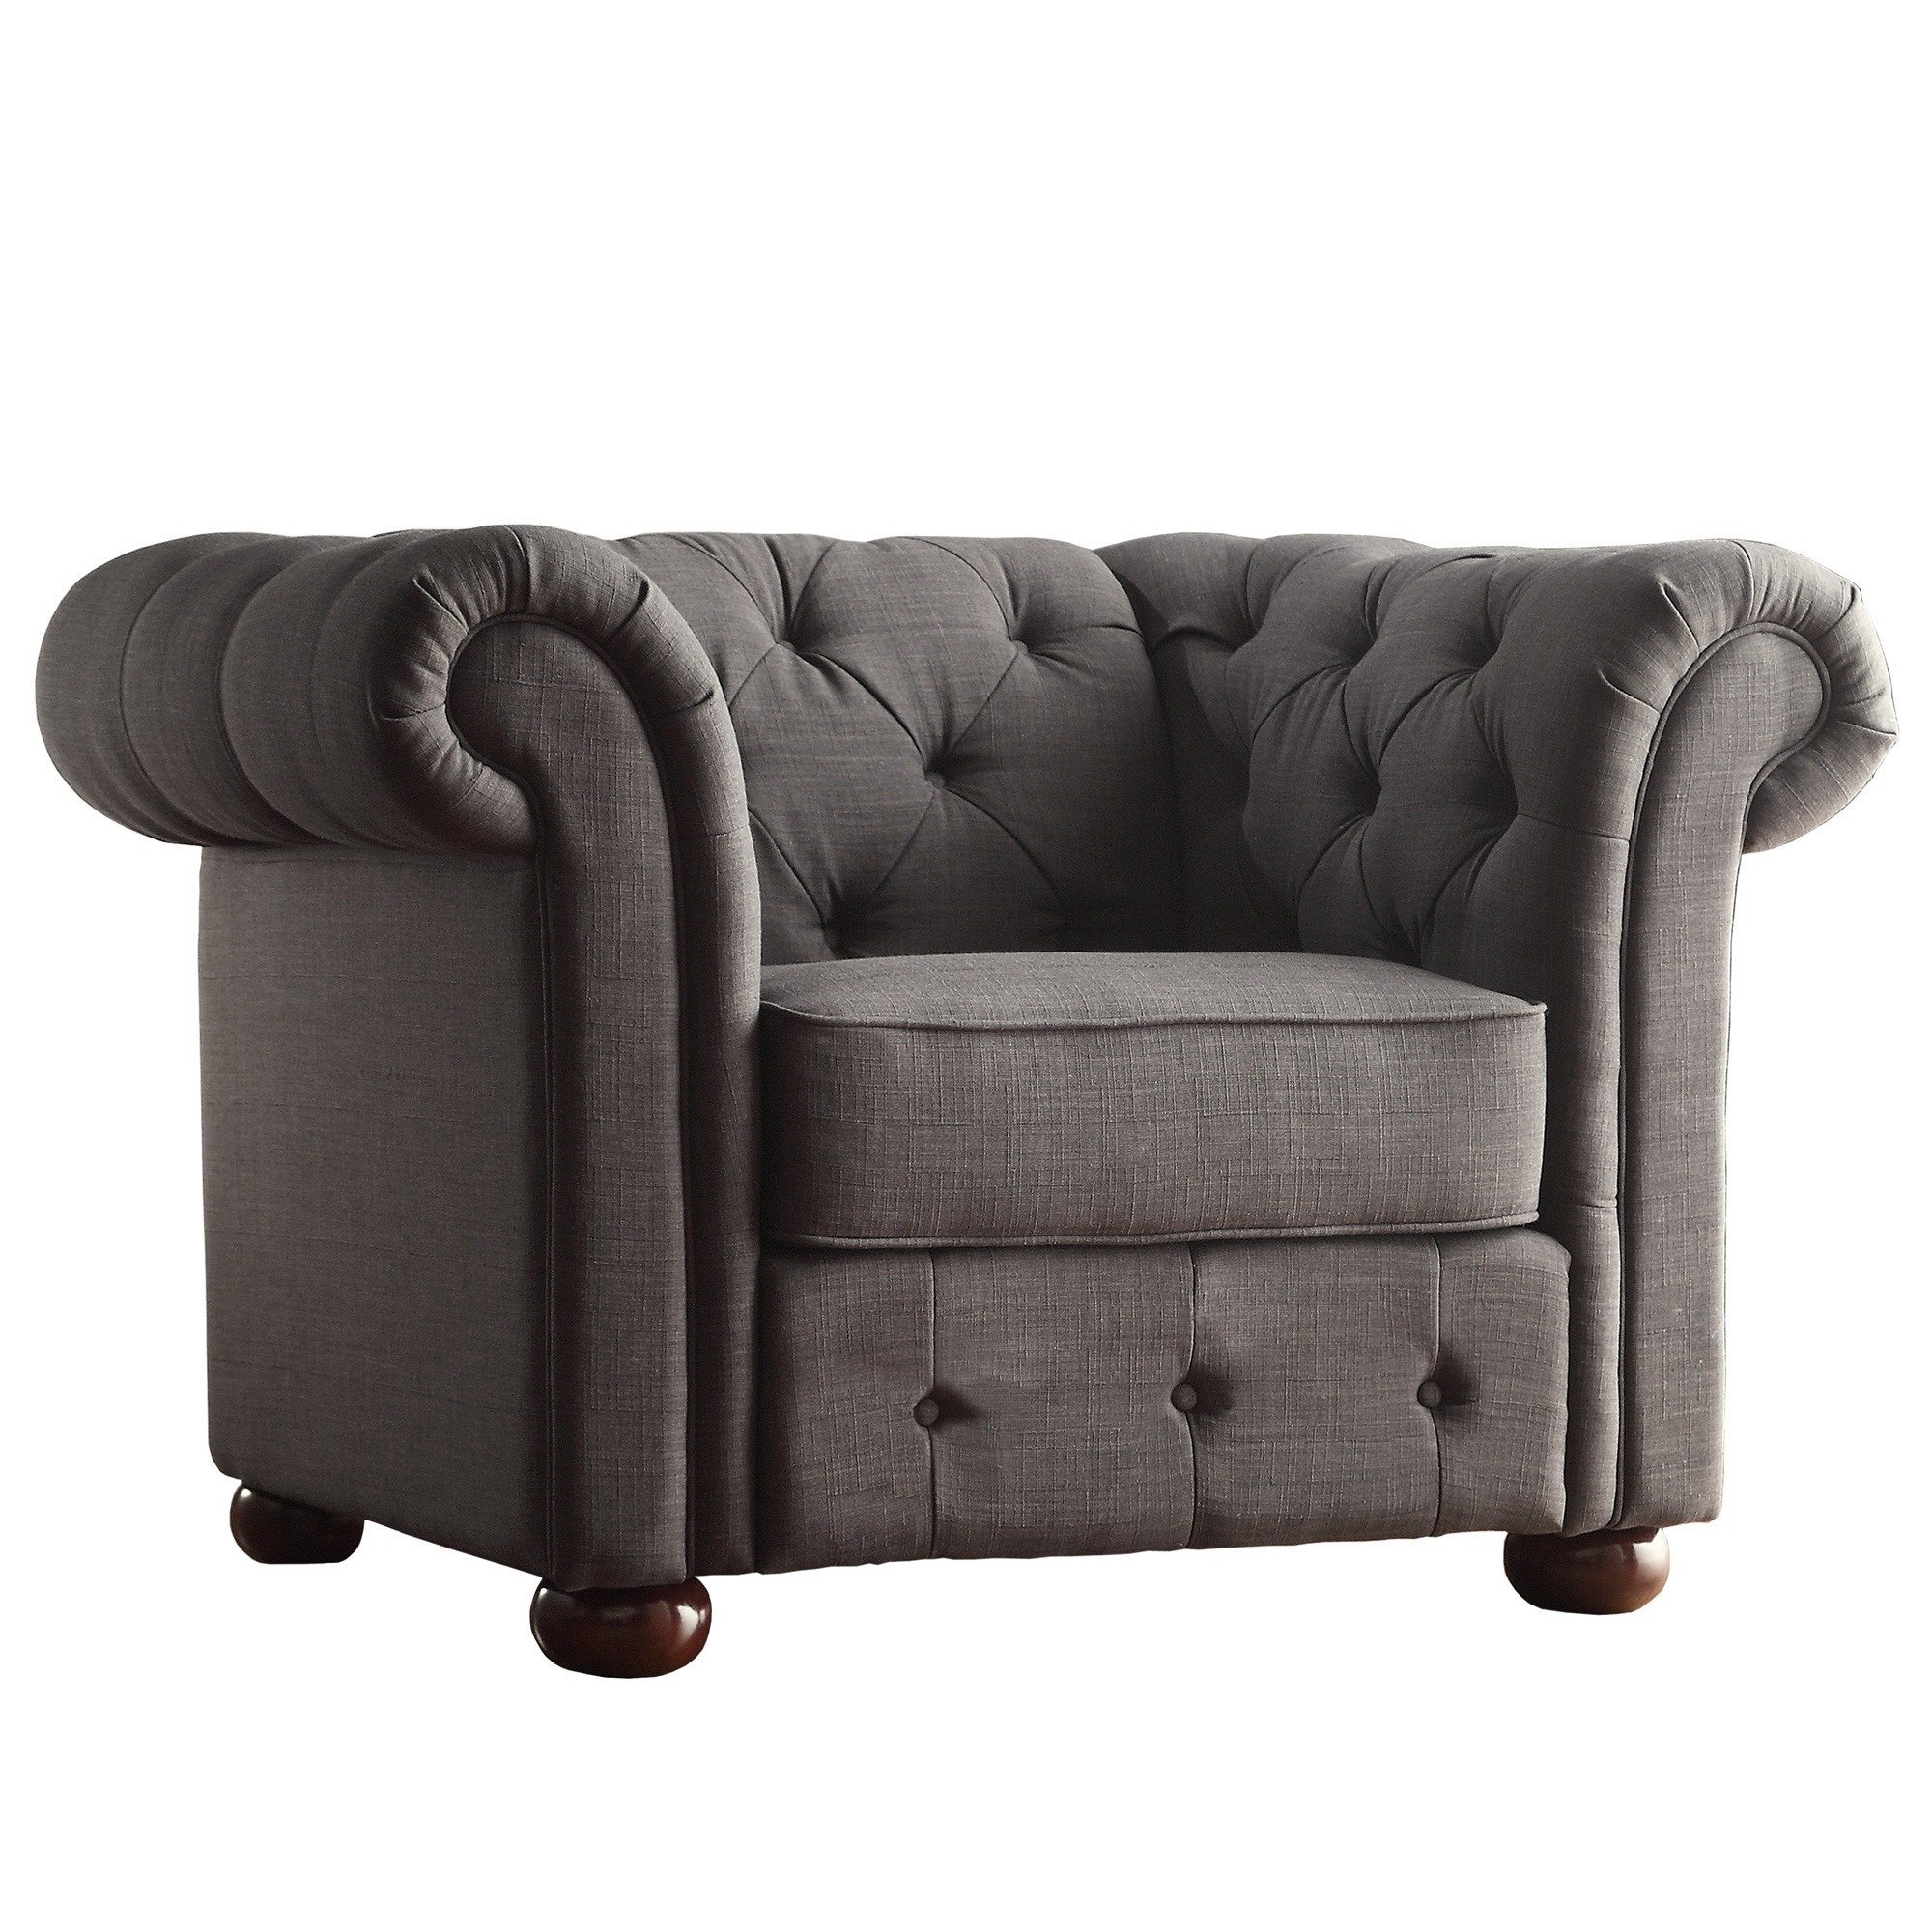 Shop Knightsbridge Linen Tufted Scroll Arm Chesterfield Chair by iNSPIRE Q  Artisan - On Sale - Free Shipping Today - Overstock - 9242321